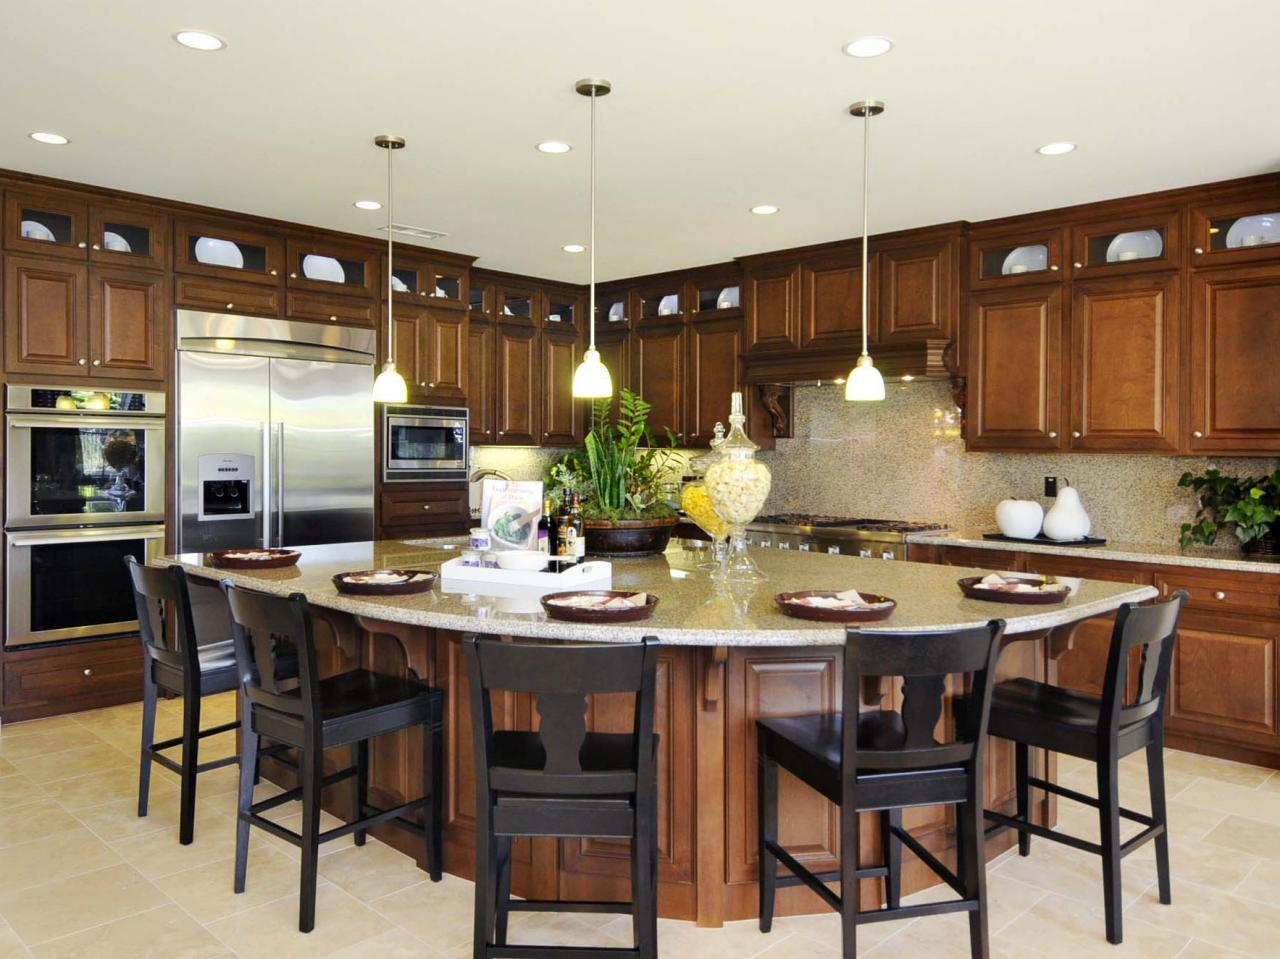 Uncategorized Kitchens With Islands Images island with seating kitchen dimensions this bright ceiling lamps above wooden islands for gorgeous oak cabinets